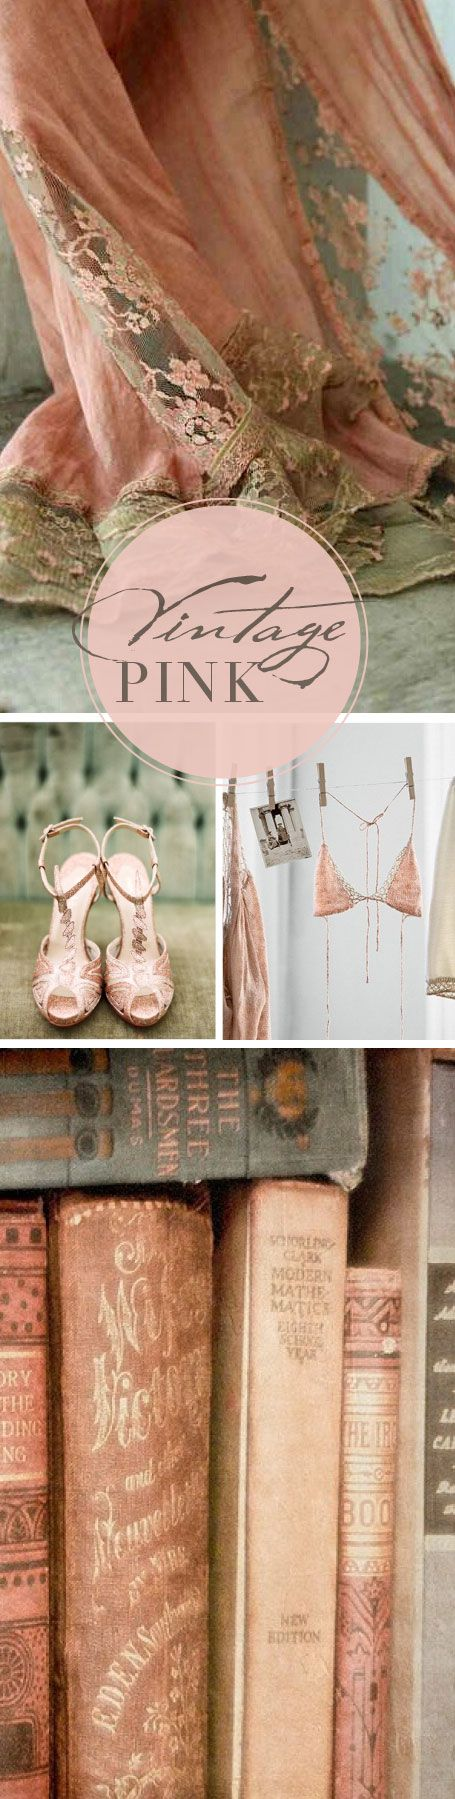 vintage-pink-inspired-Love this color of pinky/corally...Am gonna try to find some books like these! They're beautiful!